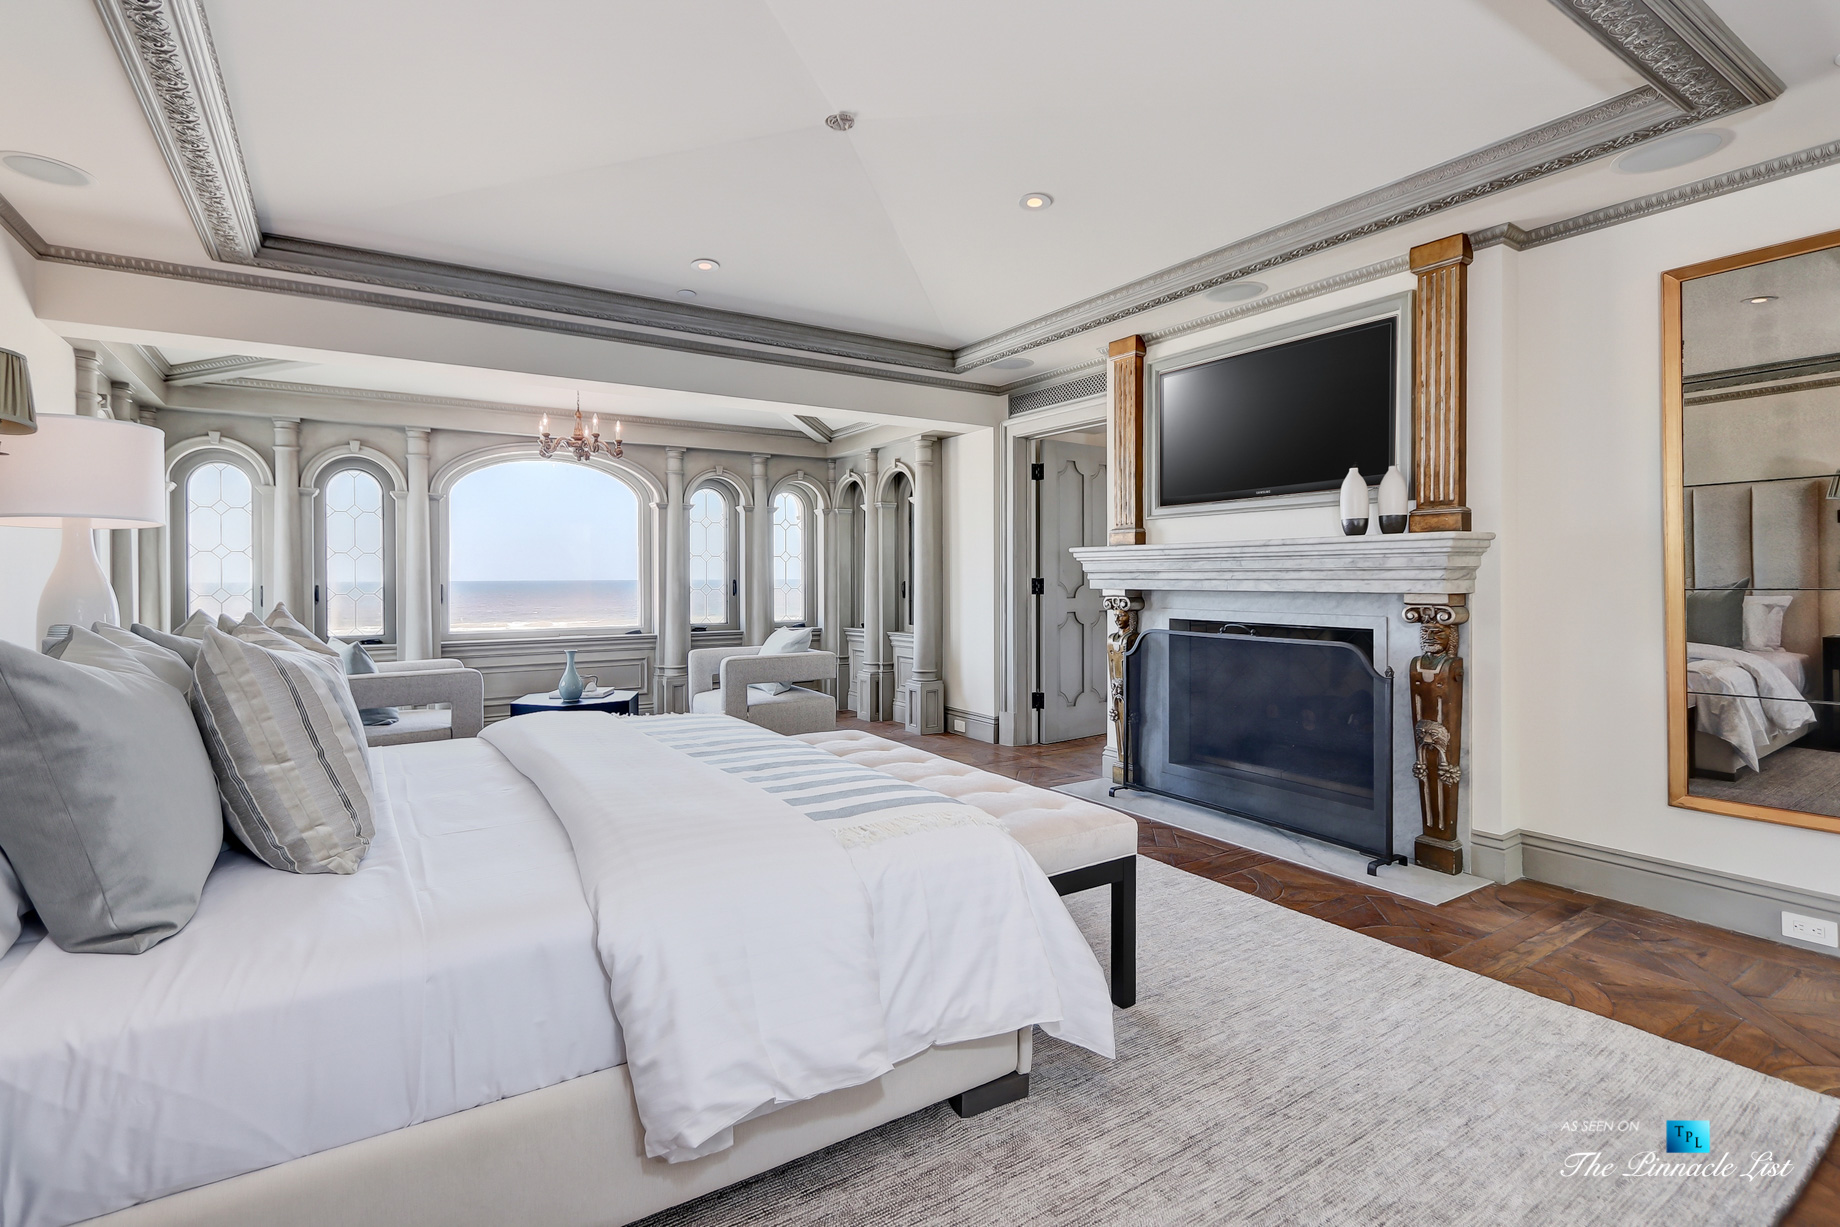 Oceanfront Luxury Living Exemplified - 2806 The Strand, Hermosa Beach, CA, USA - Master Bedroom